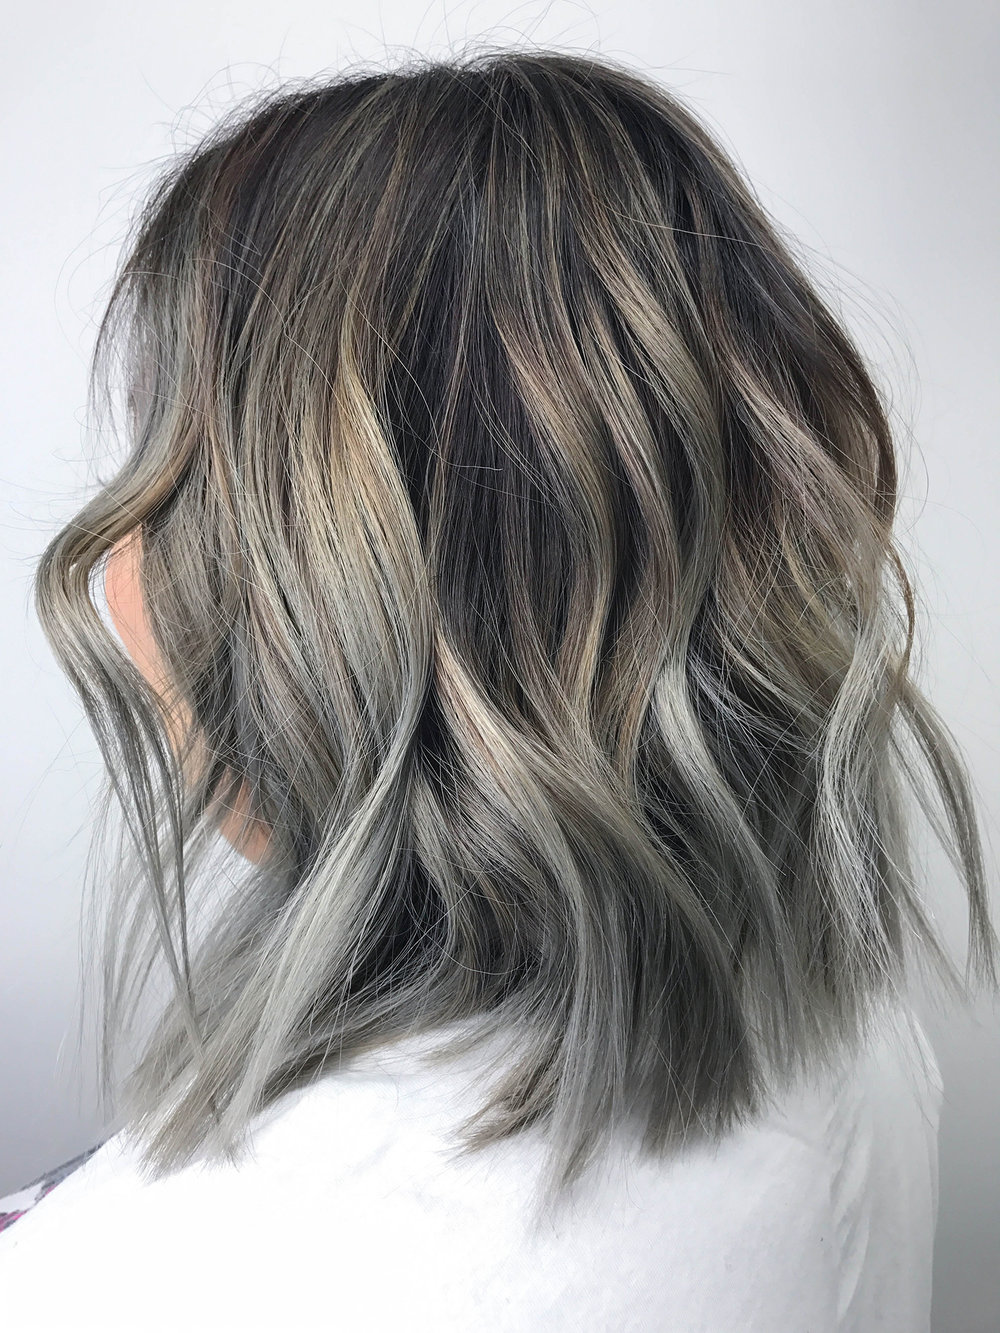 I get so many questions about my hair so today I'm sharing with you all about my hair cut, color, and style on my blog, beautybyjessika.com.